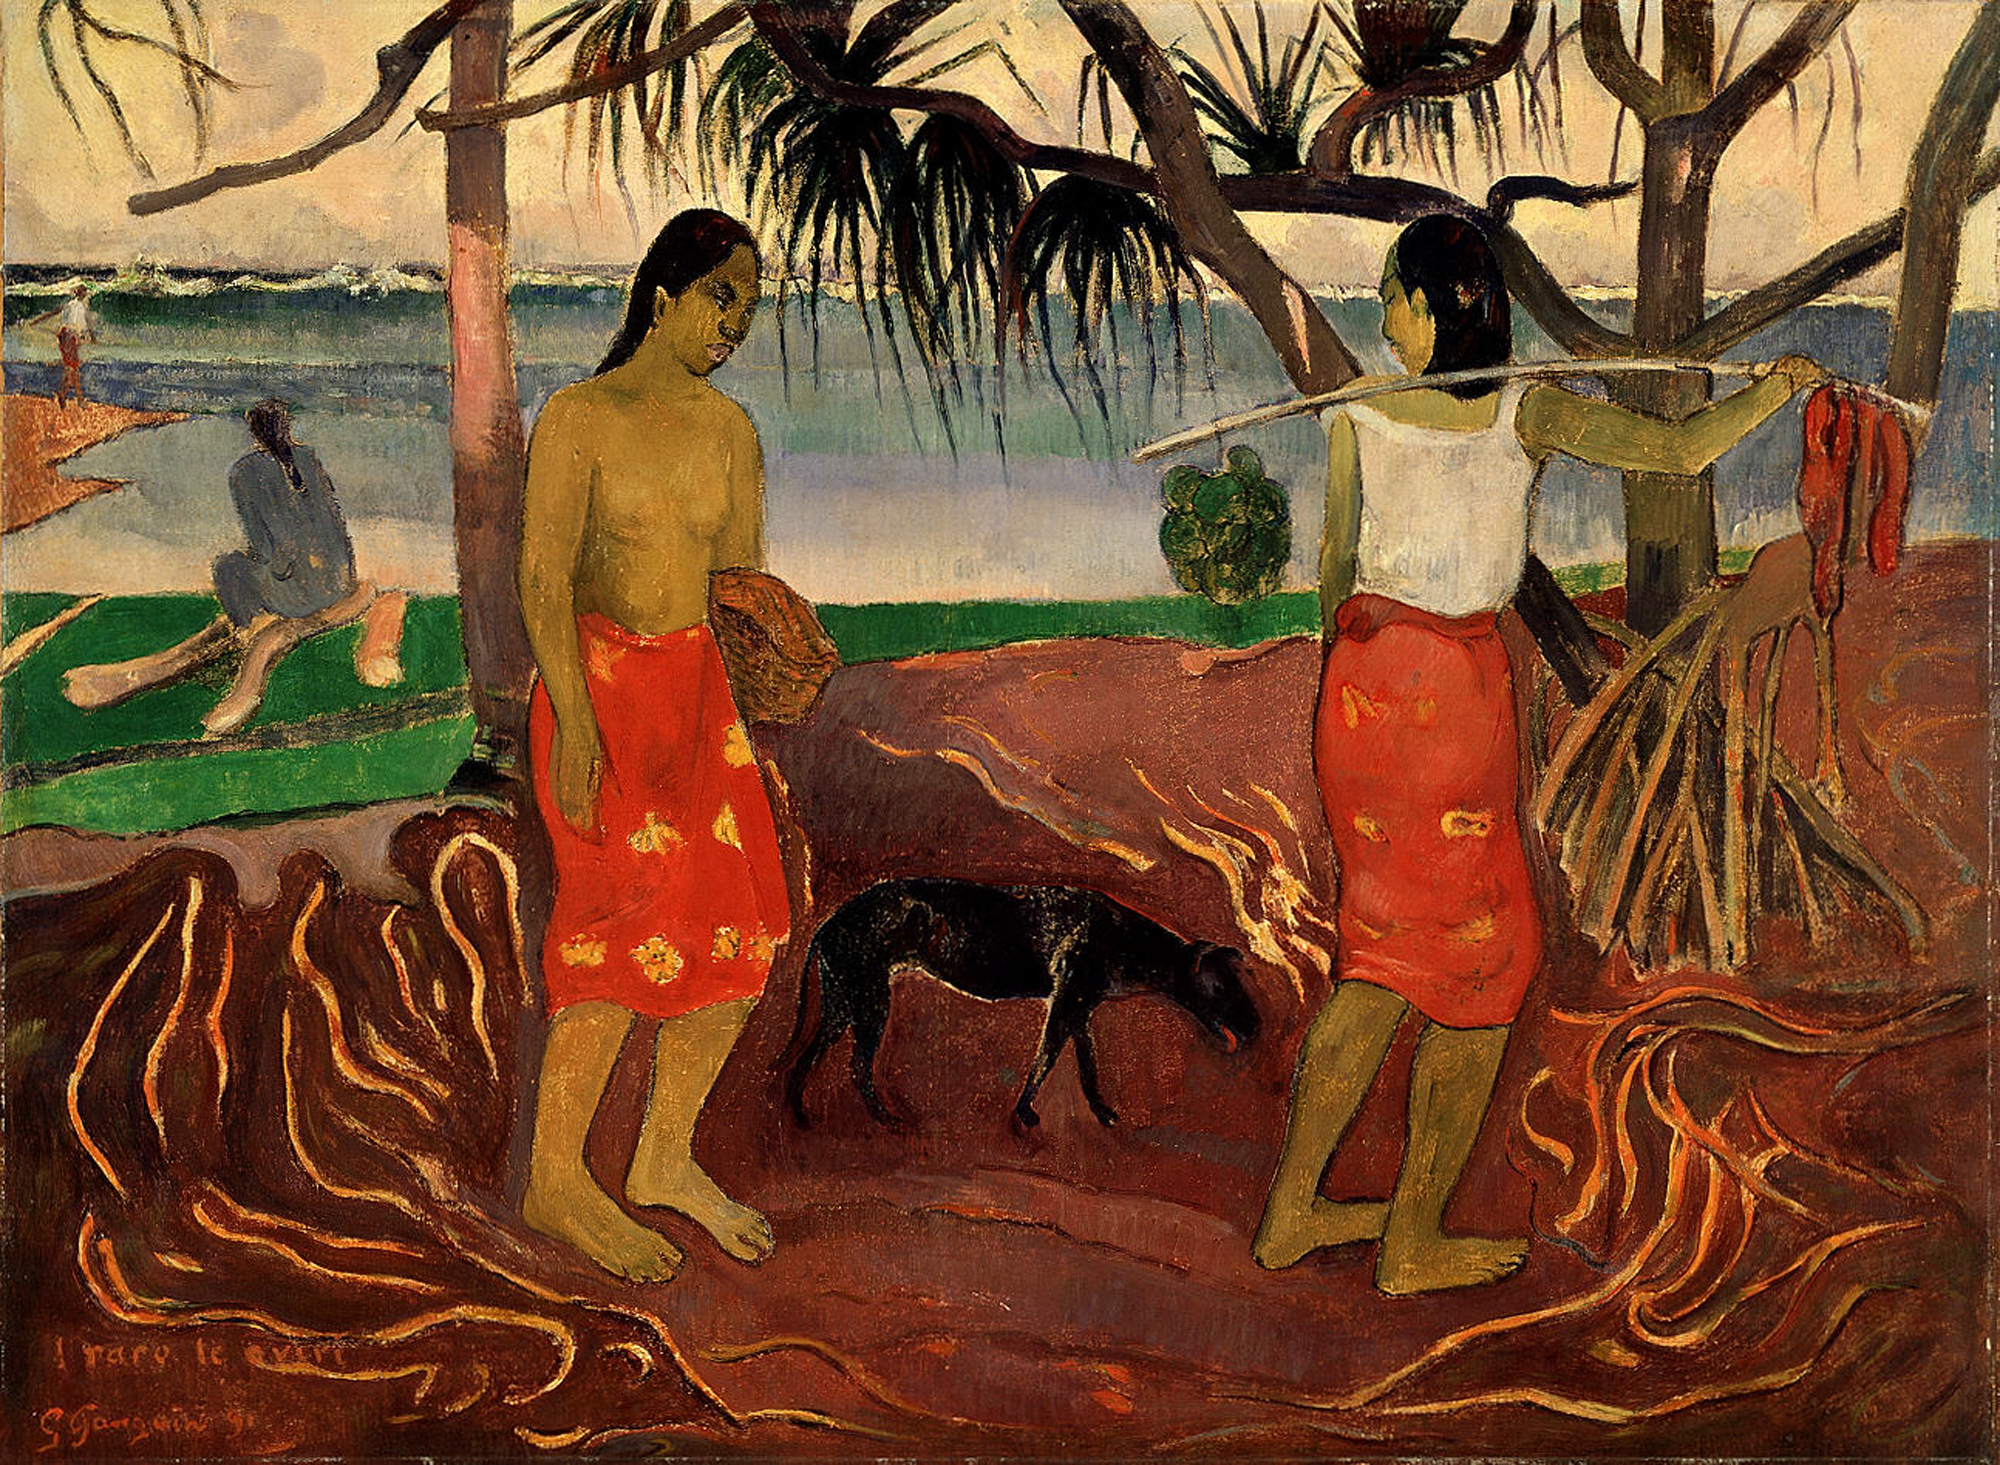 http://upload.wikimedia.org/wikipedia/commons/5/55/I_raro_te_Oviri_-_Gauguin.JPG